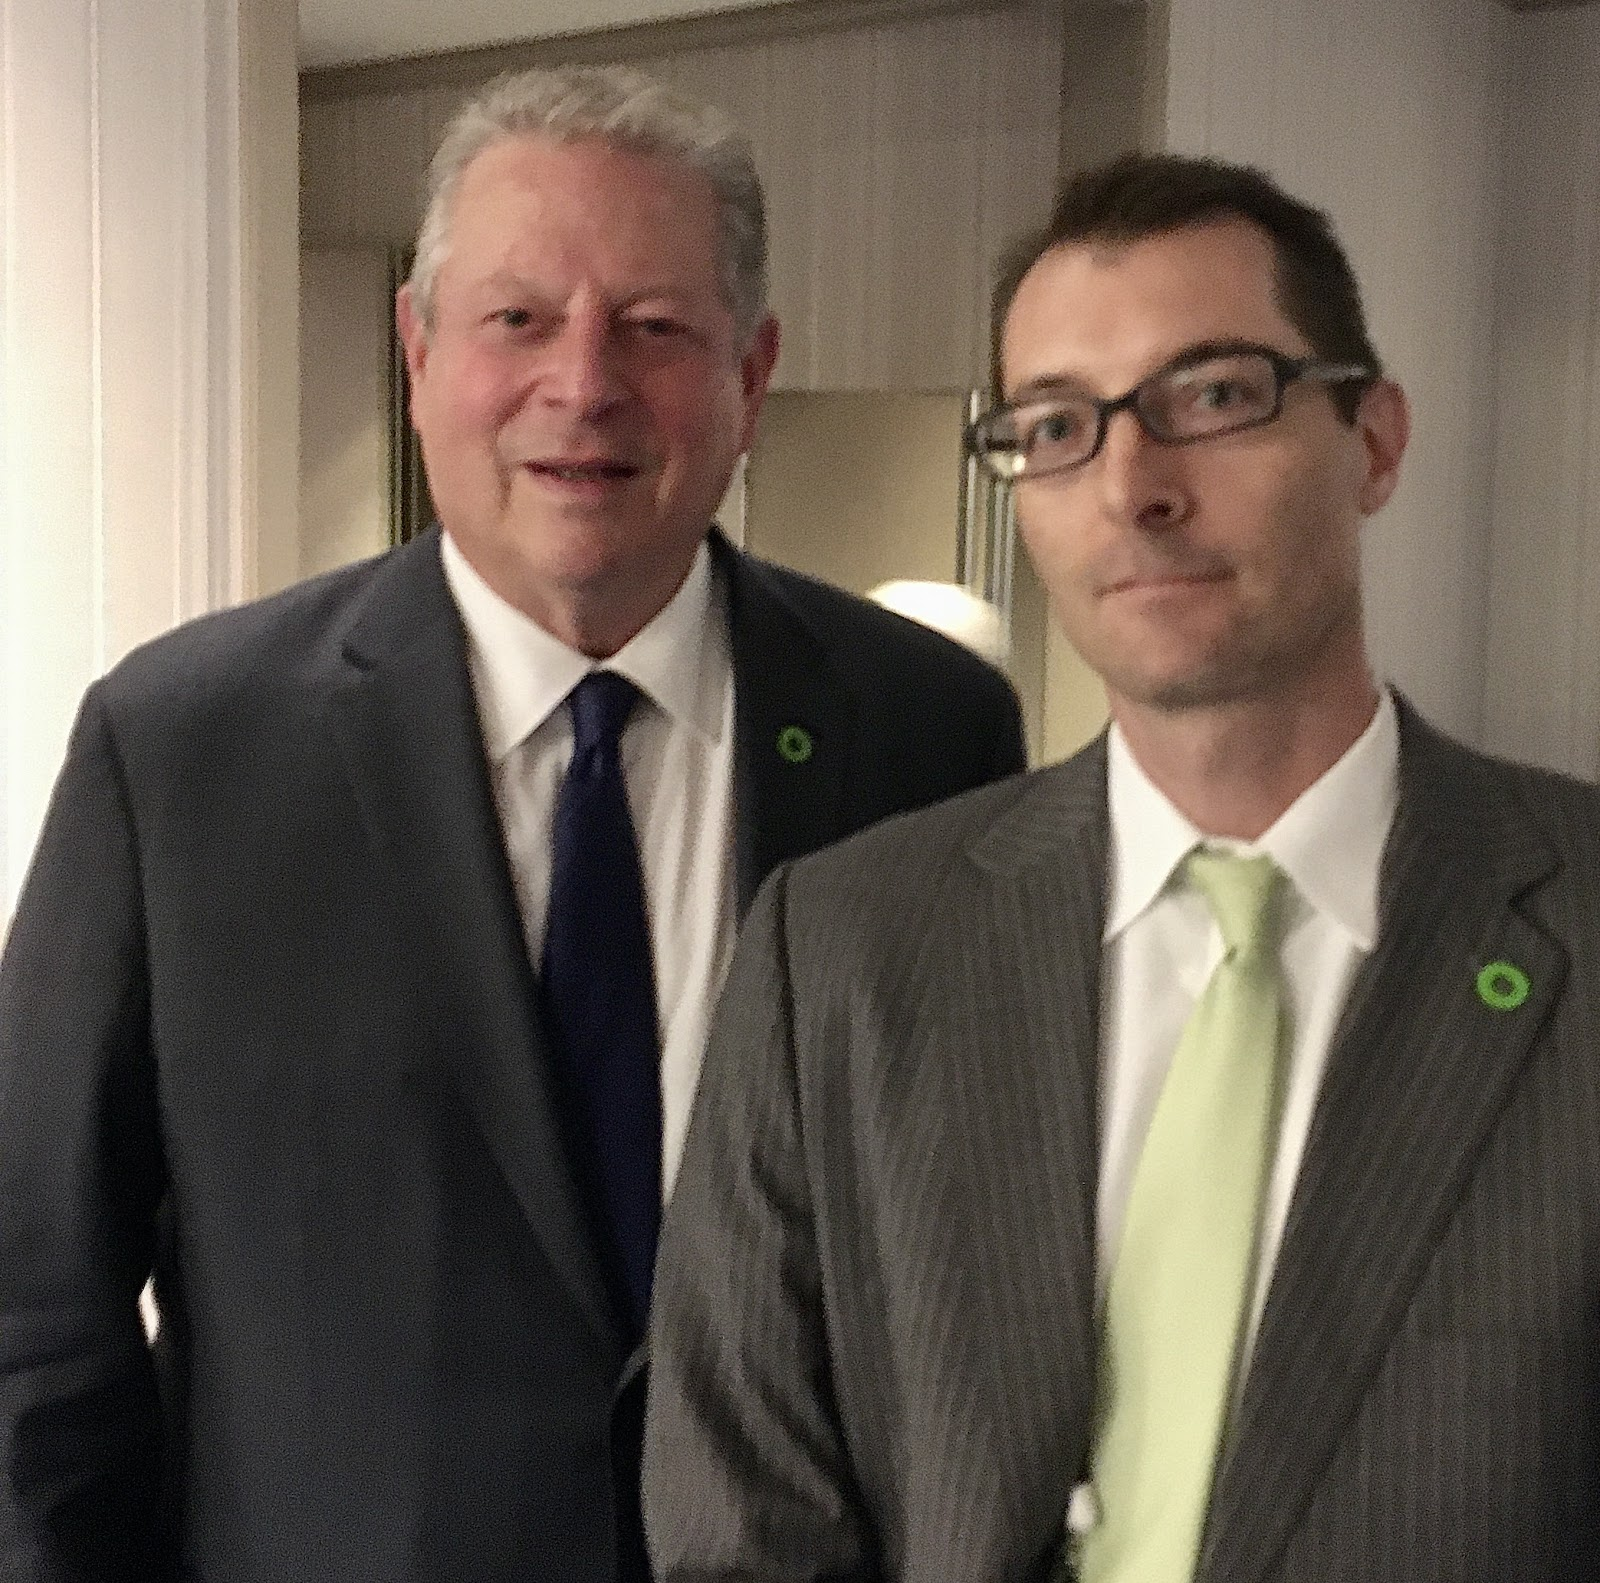 US Vice President Al Gore with Chris Kozak at the Climate Reality Leadership Corps training, October, 2019, Tokyo, Japan.